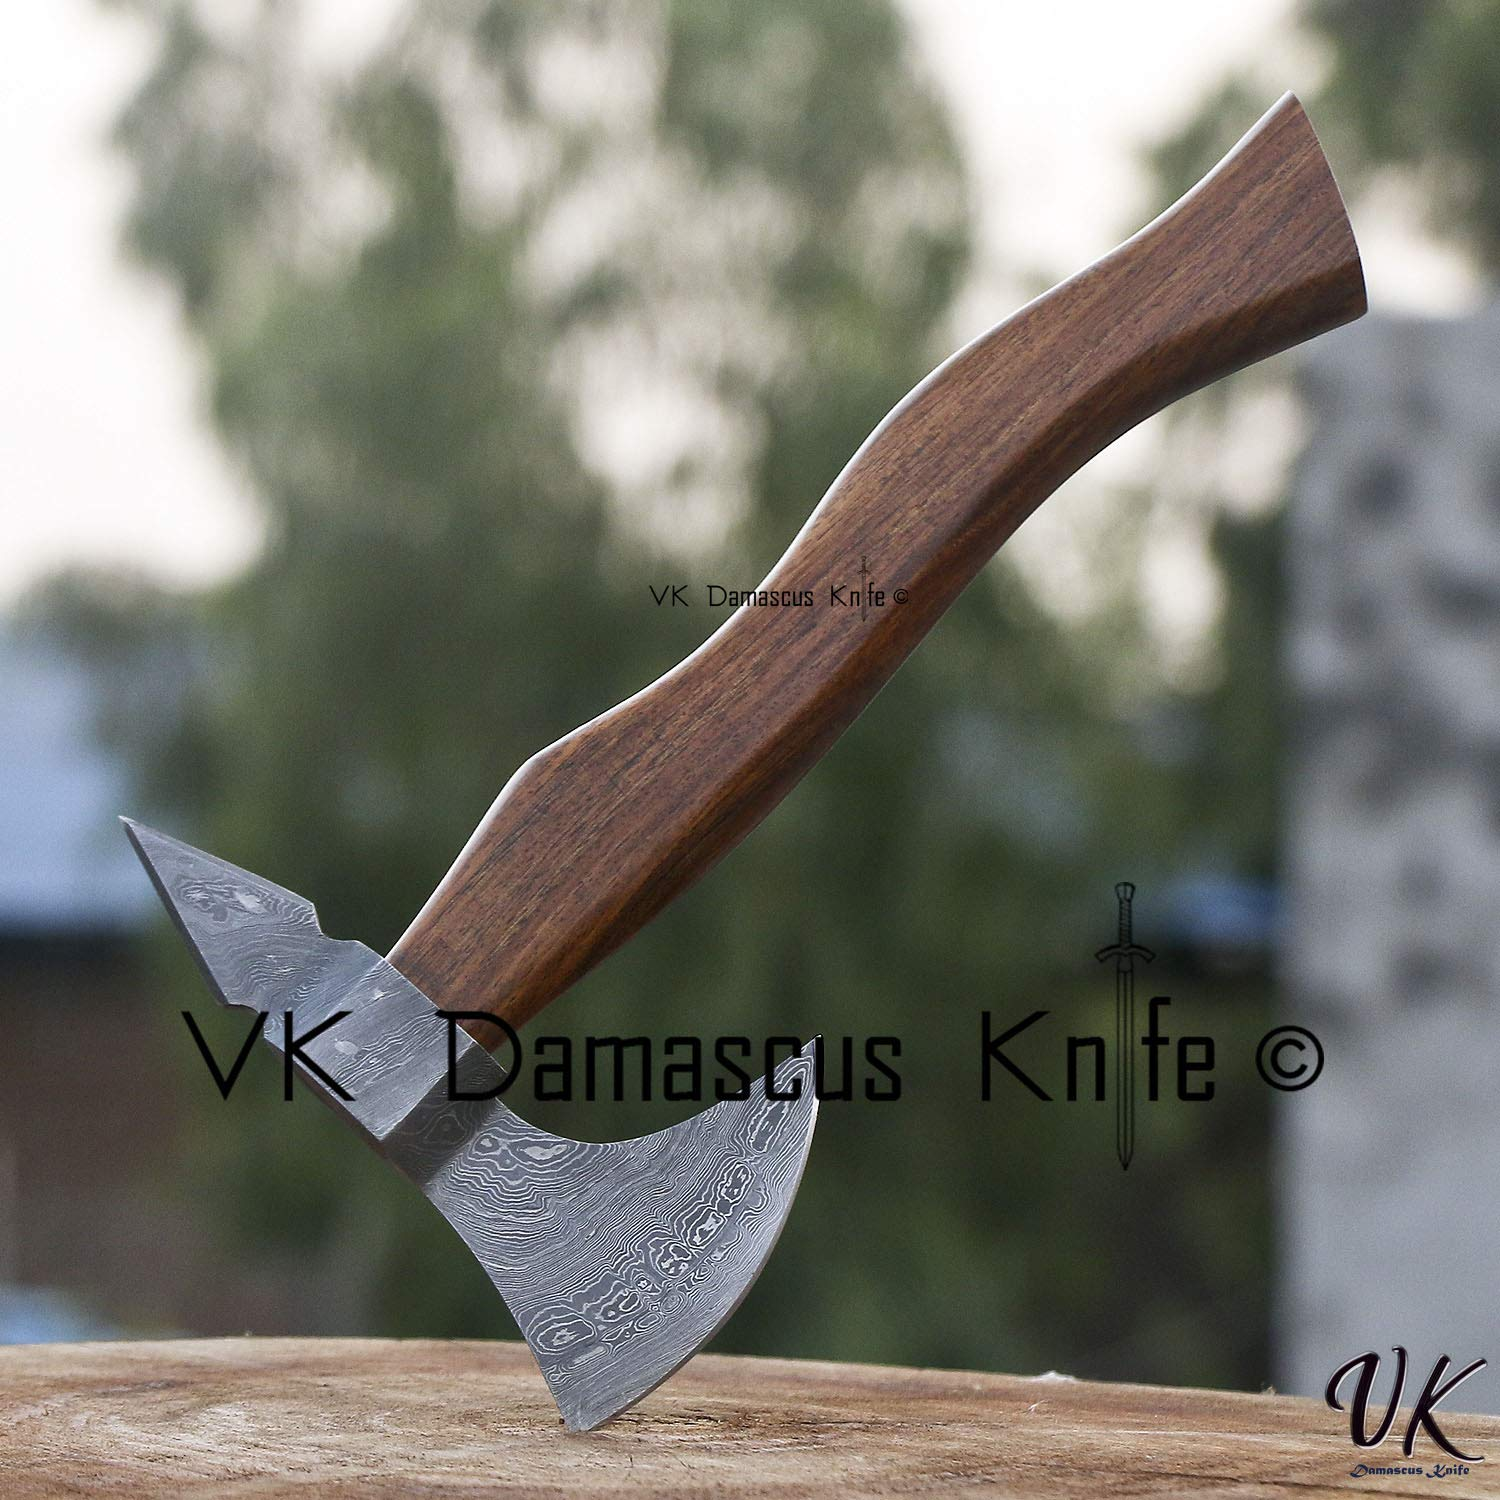 JNR TRADERS Handmade Damascus Steel Axe Hatchet Tomahawk Knife 10.00 Inches Axe Rose Wood Handle vk2217 by JNR TRADERS (Image #6)